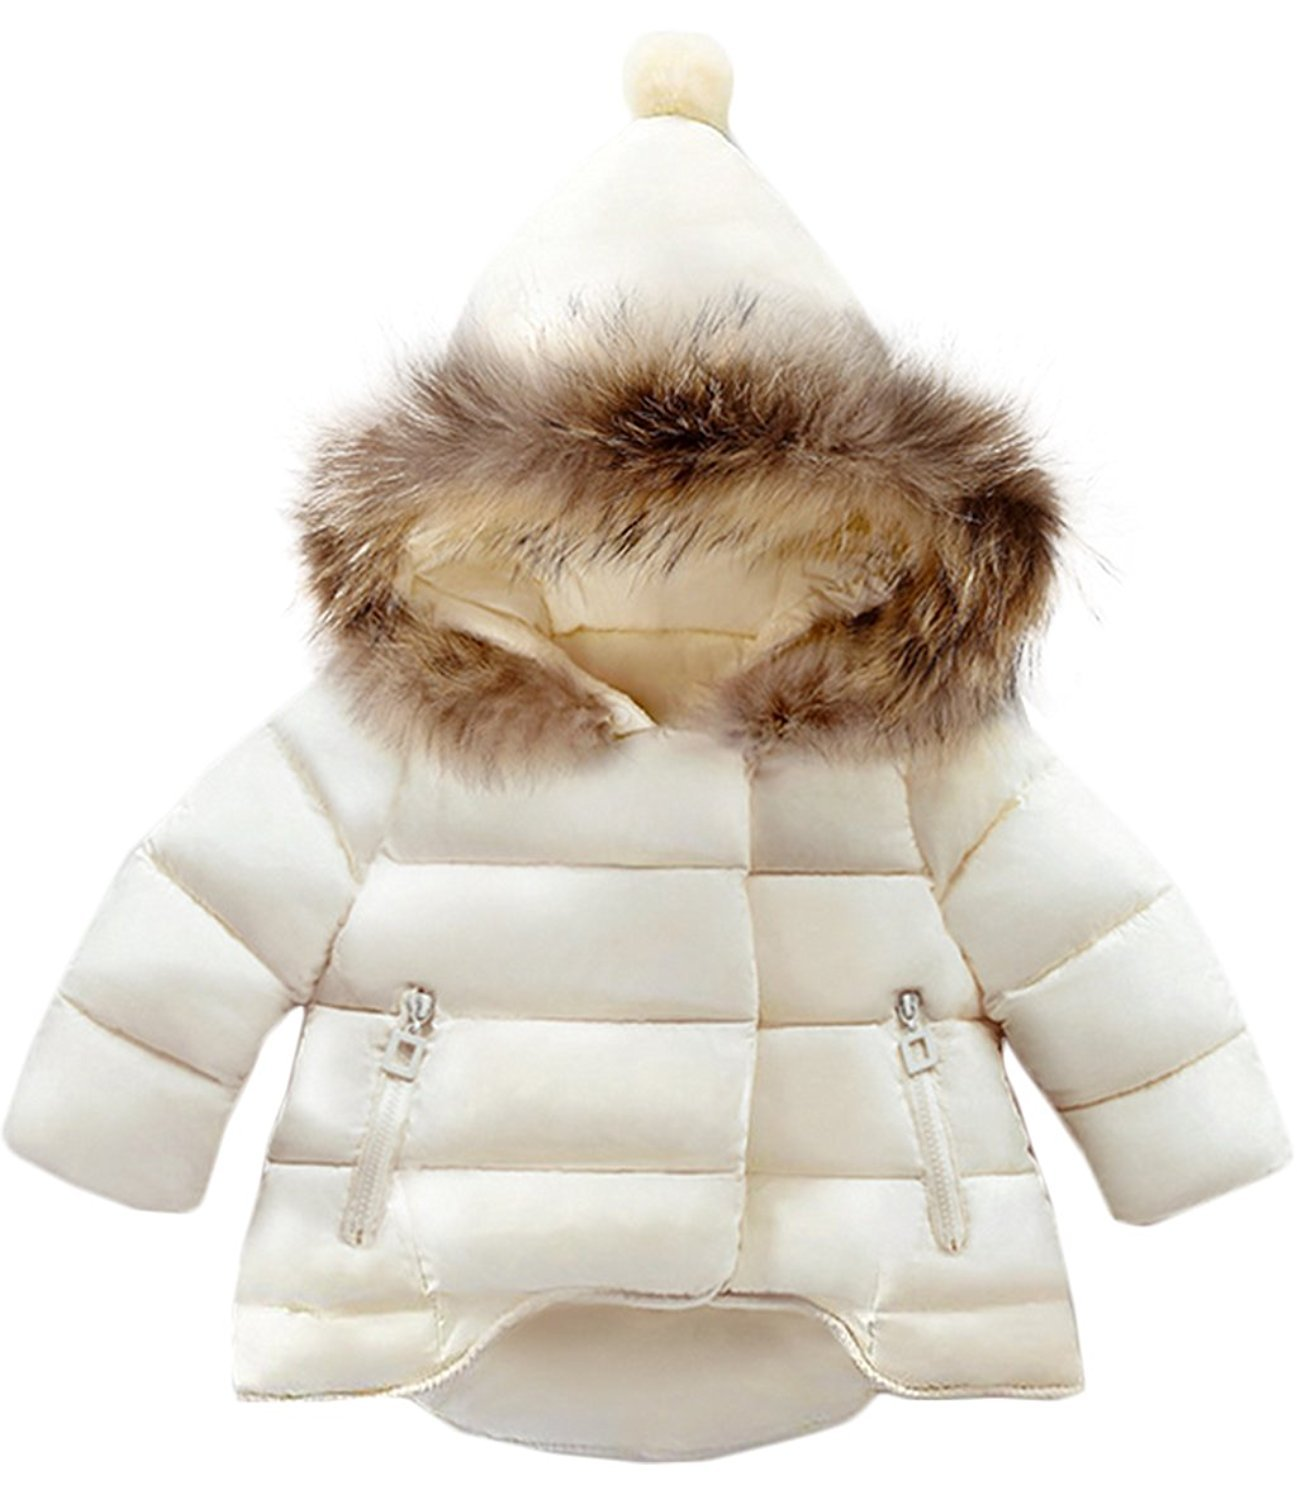 Jojobaby Baby Boys Girls Hooded Snowsuit Winter Warm Fur Collar Hooded Down Windproof Jacket Outerwear (6-12 Months, Beige) by Jojobaby